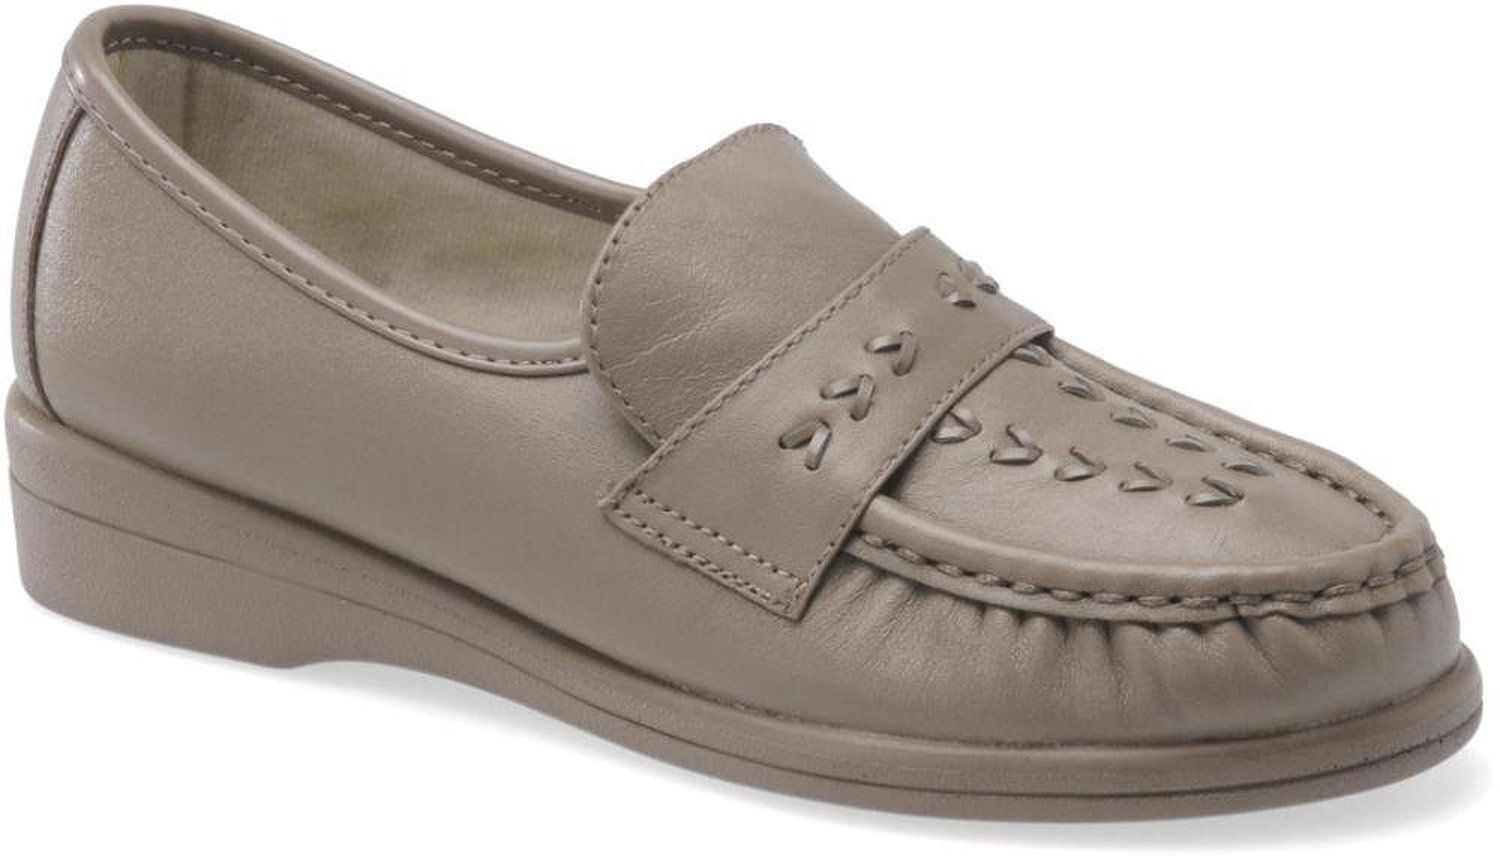 Softspots VENUS LITE 114706 Womens Taupe Taupe Taupe Slip On Comfort shoes 39b4fa